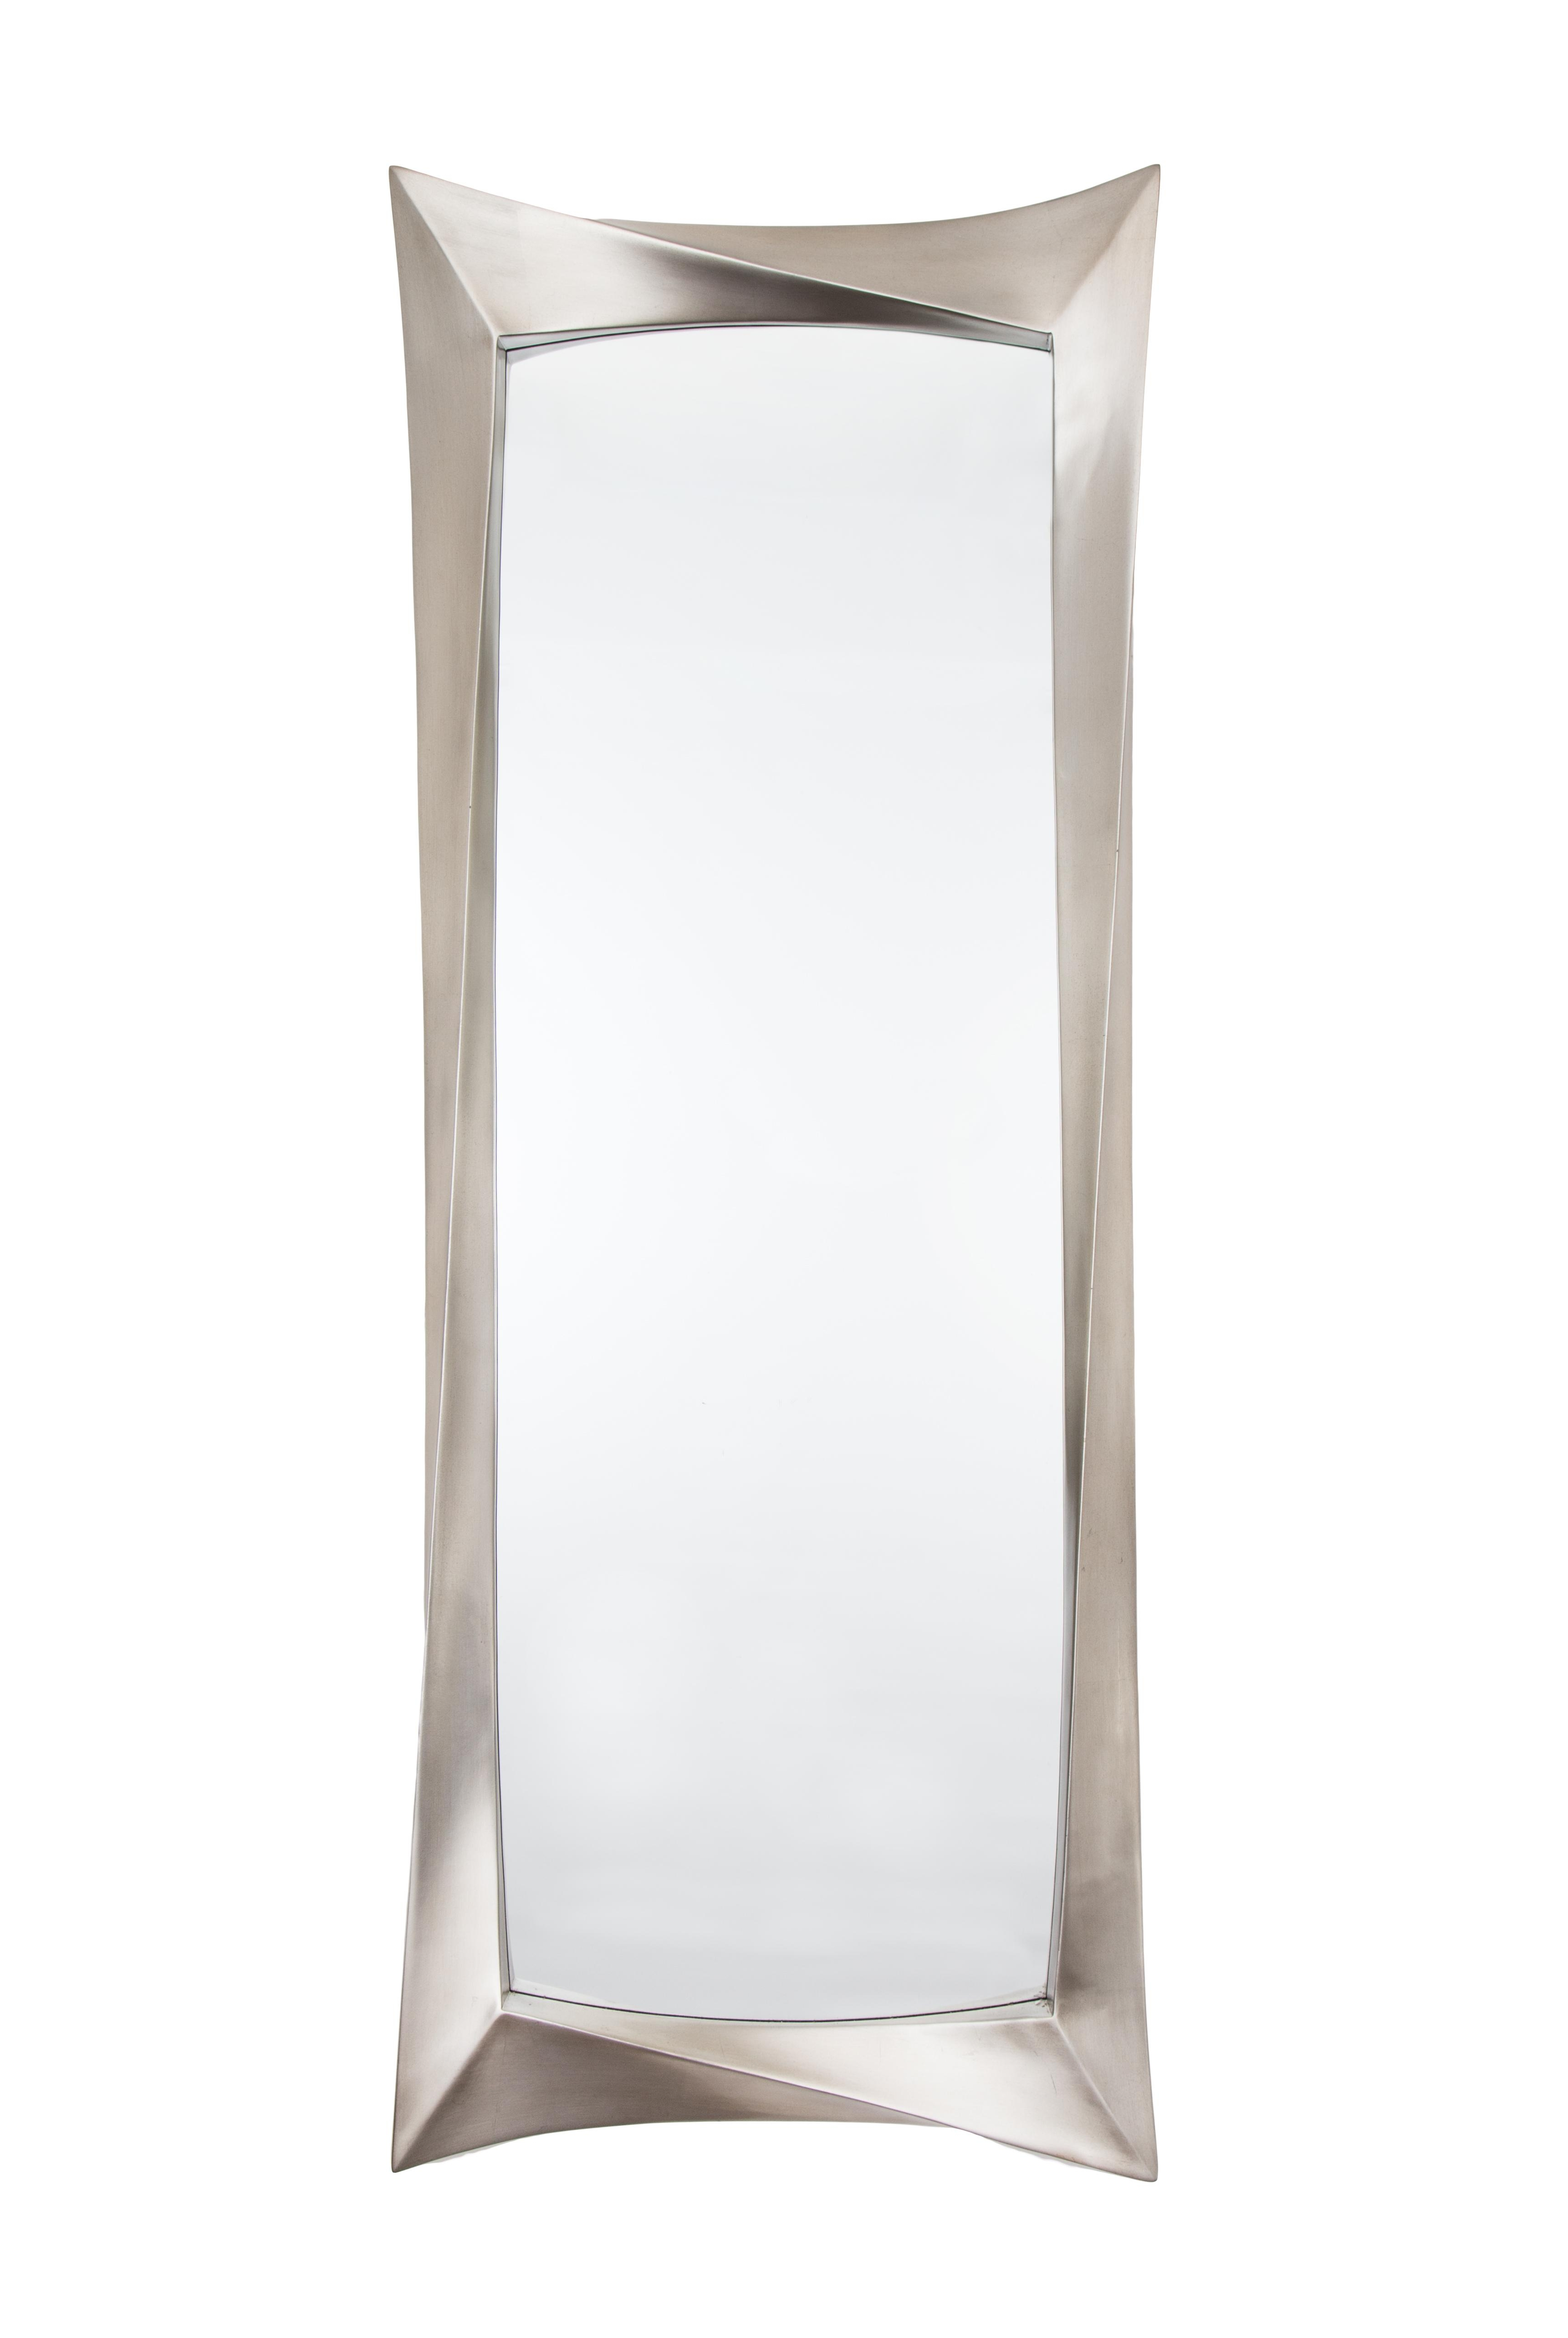 Silver Long Wall Mirror Intended For Silver Long Mirror (Image 18 of 20)